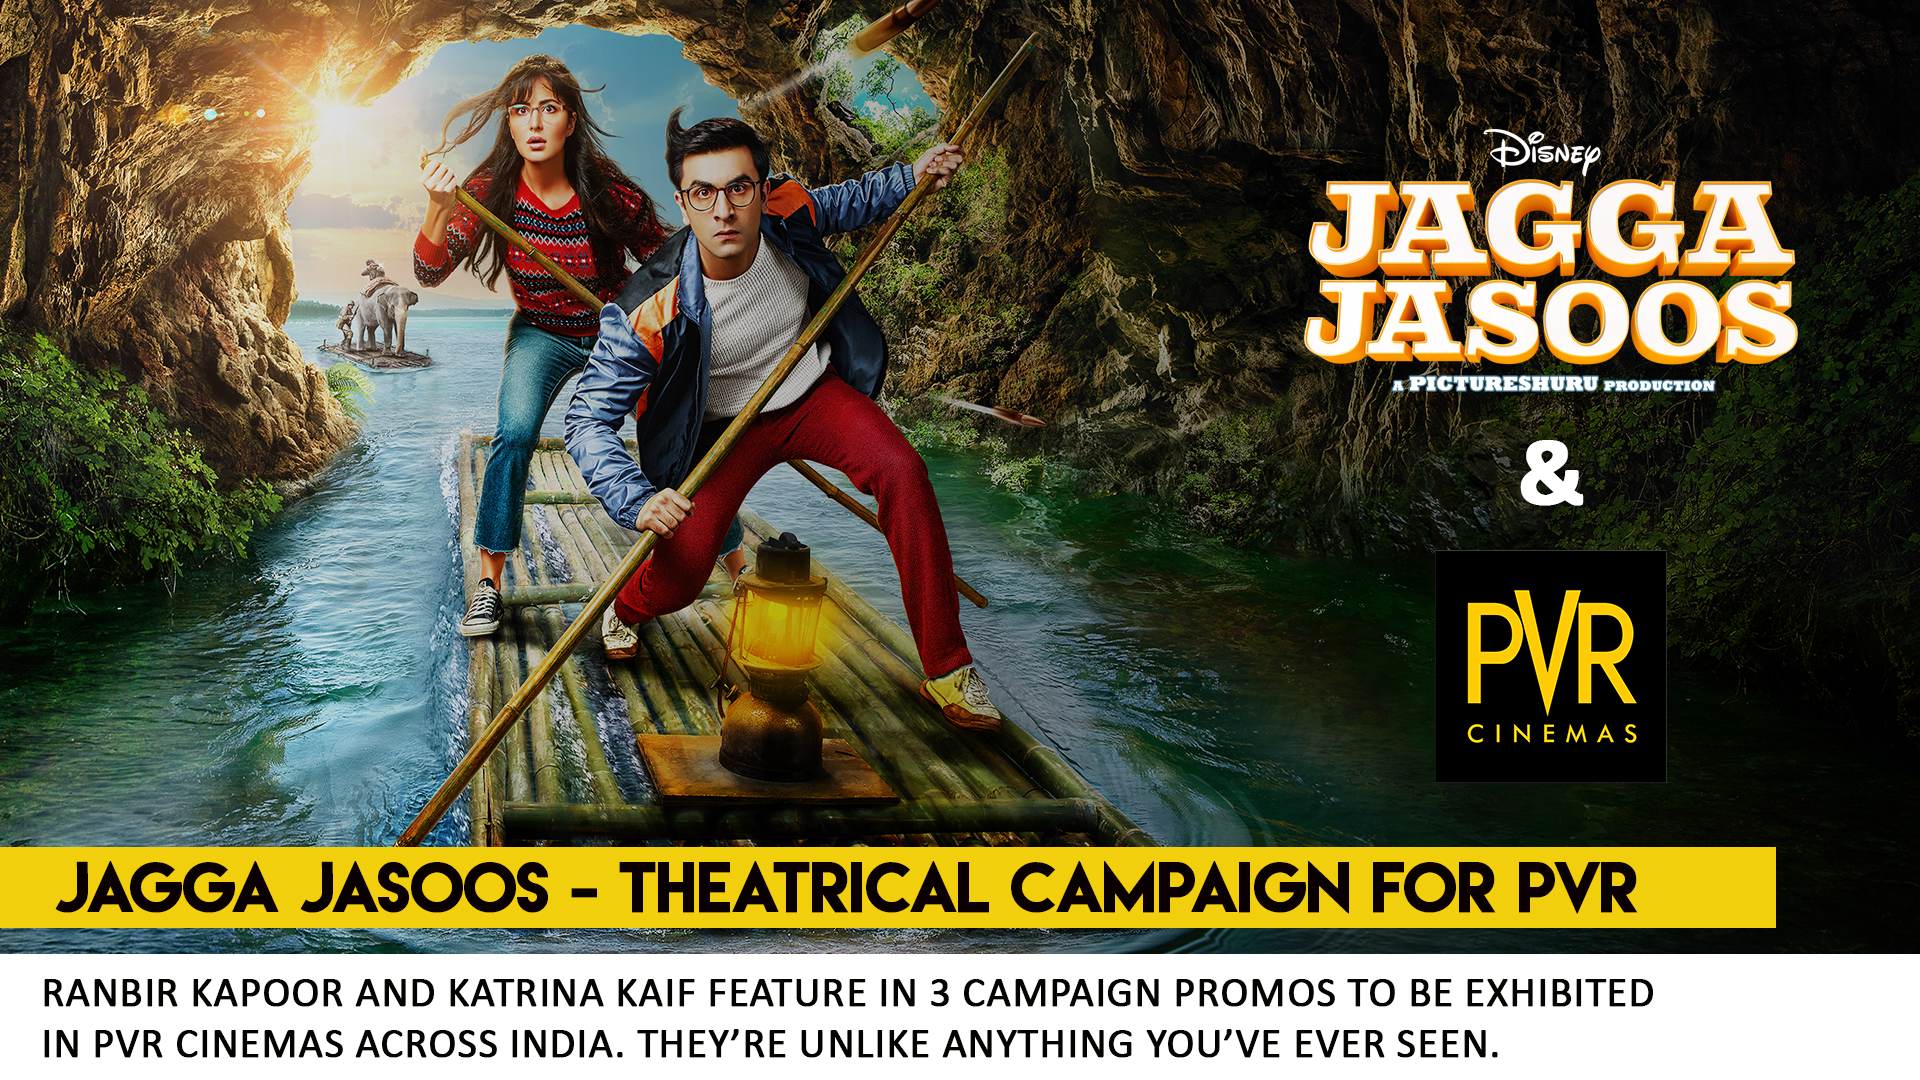 Jagga Jasoos - Trailers for PVR